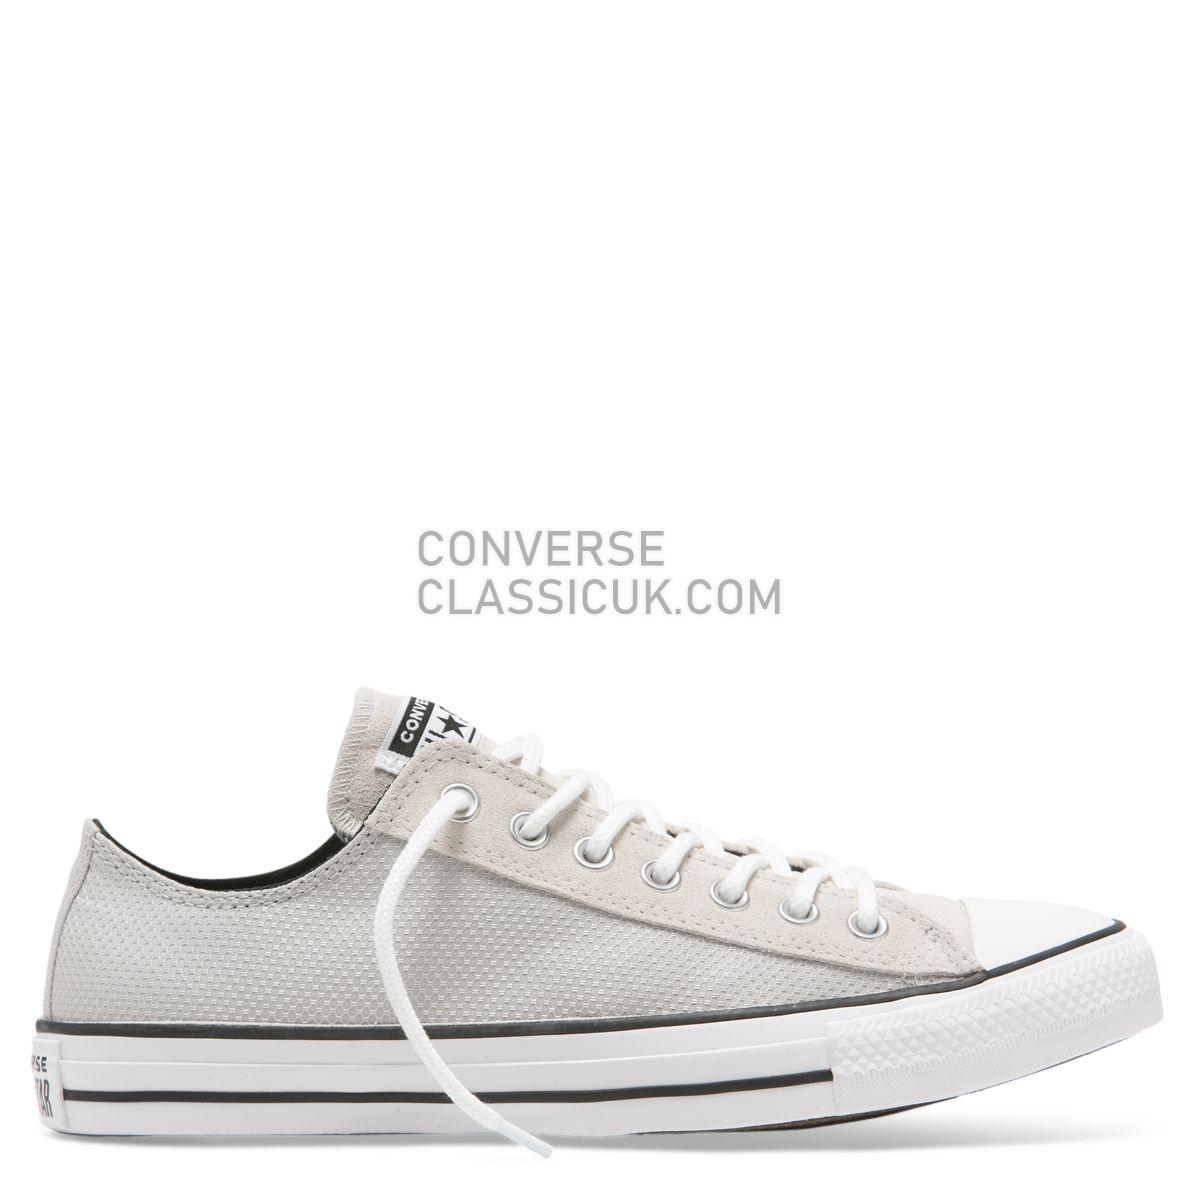 Converse Chuck Taylor All Star Utility Low Top Pale Putty Mens Womens Unisex 165333 Pale Putty/White/Black Shoes